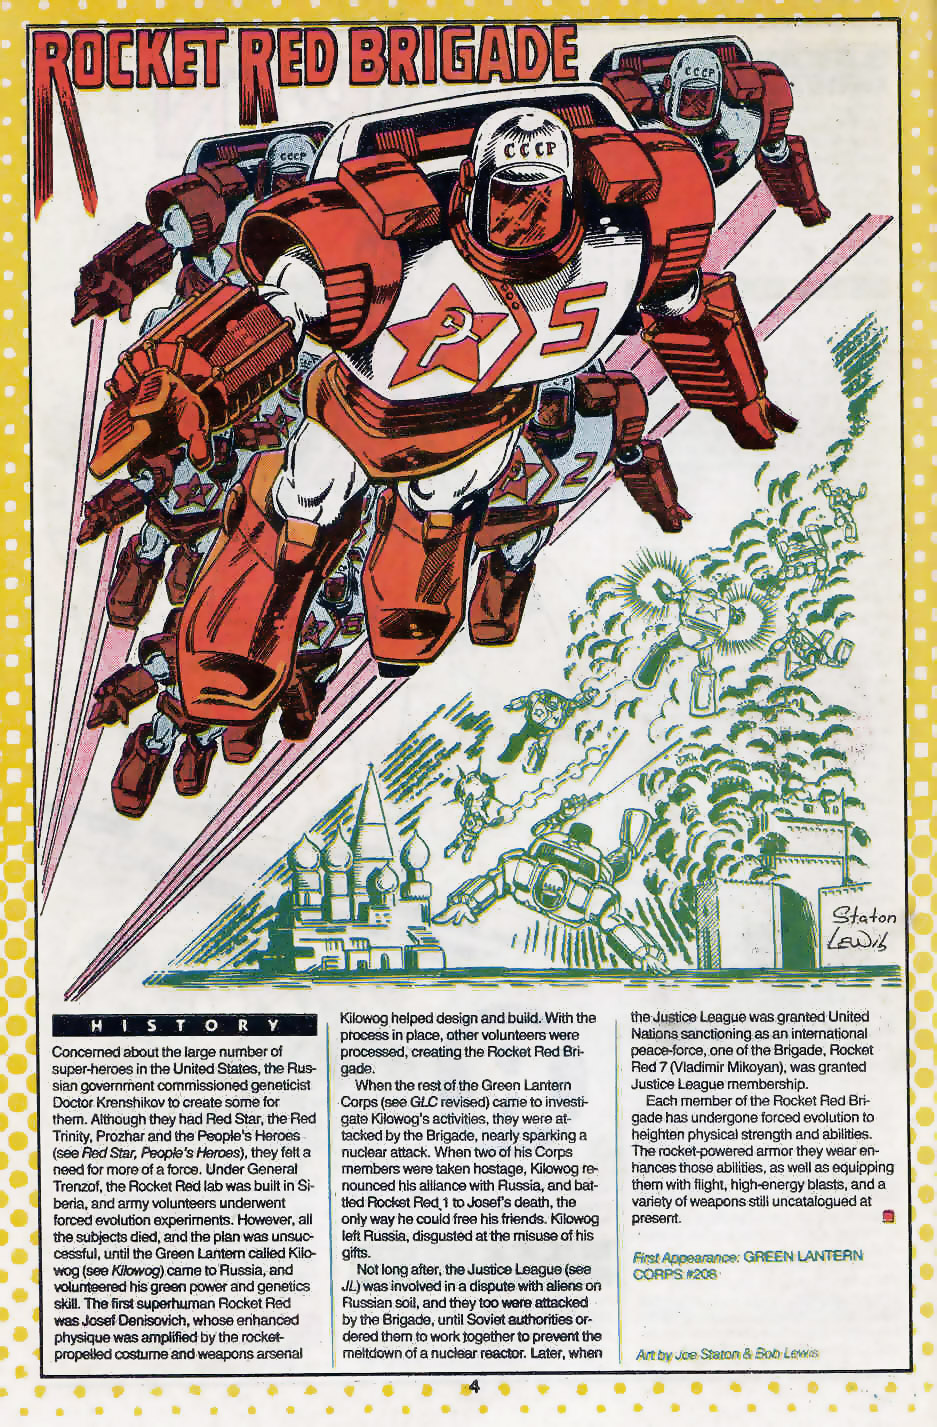 Who's Who Rocket Red Brigade by Joe Staton